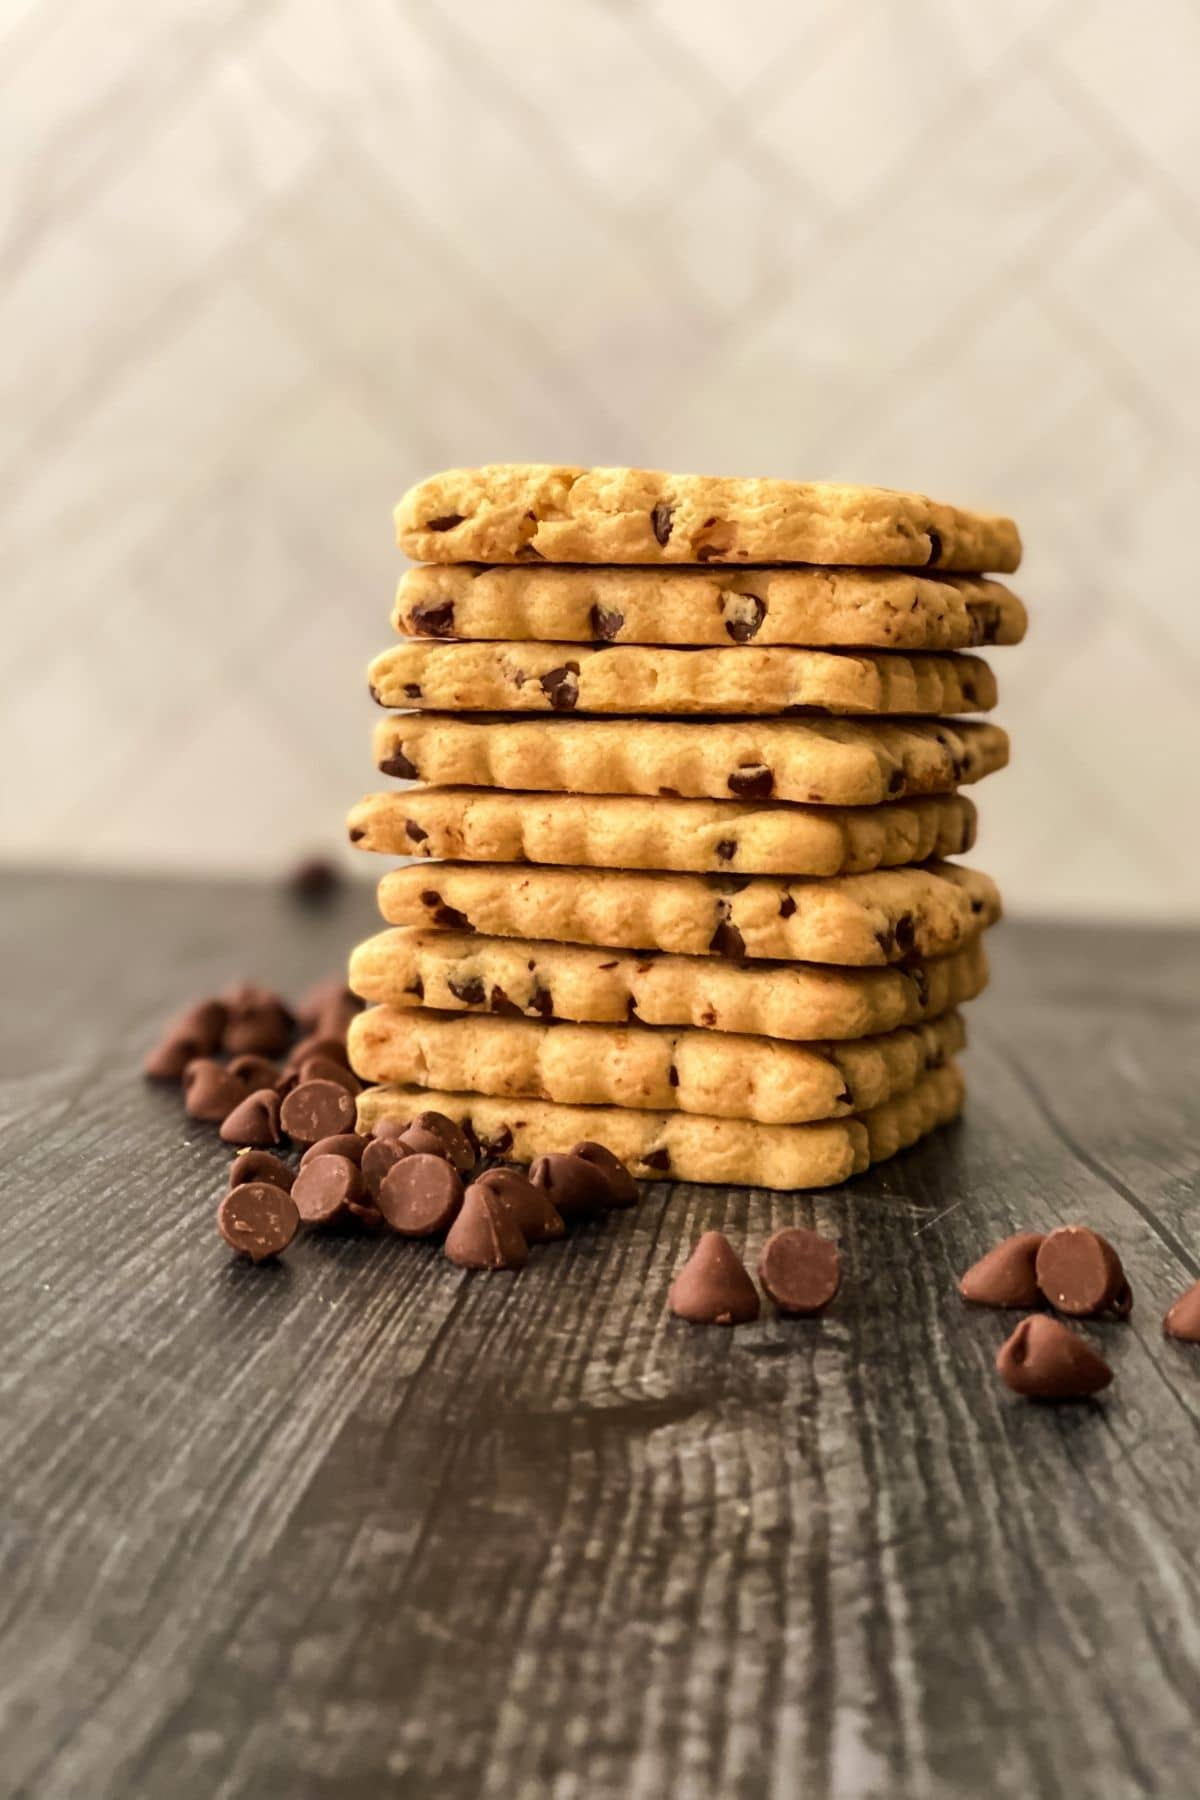 Short stack of cookies on table next to scattered chocolate chips